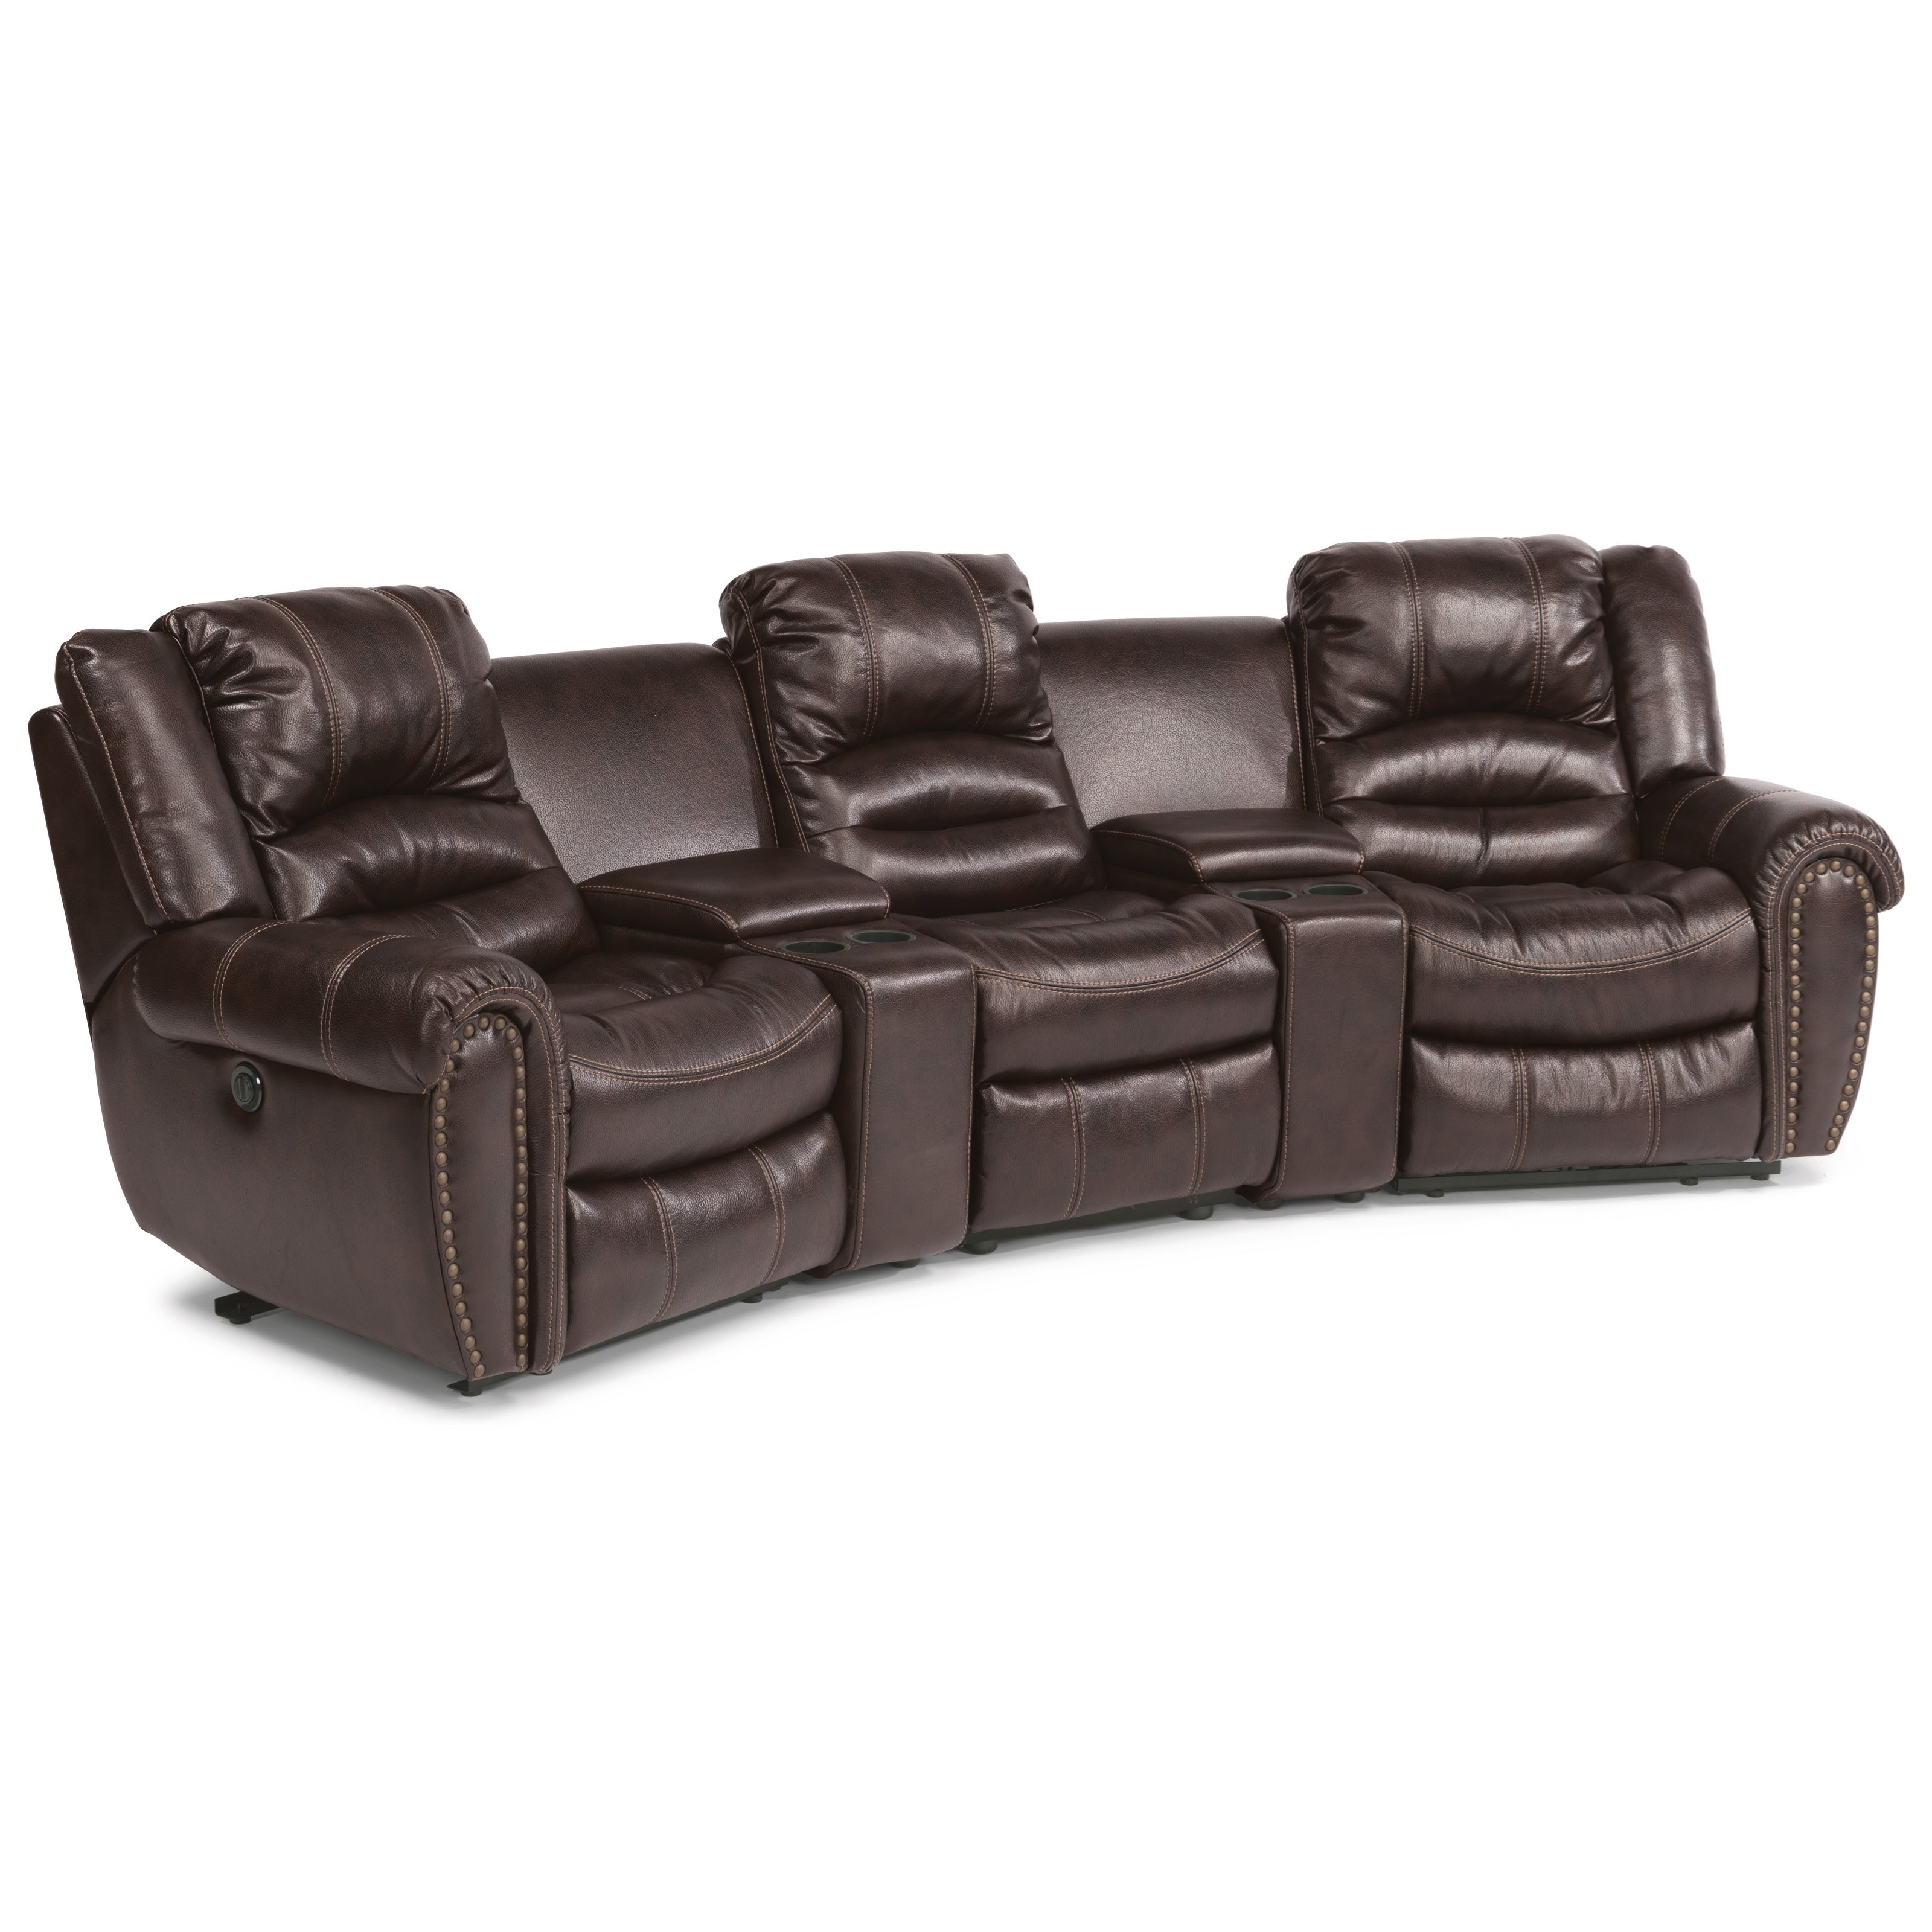 Latitudes - Town 5-Pc Power Sectional with Power Headrest by Flexsteel at Steger's Furniture